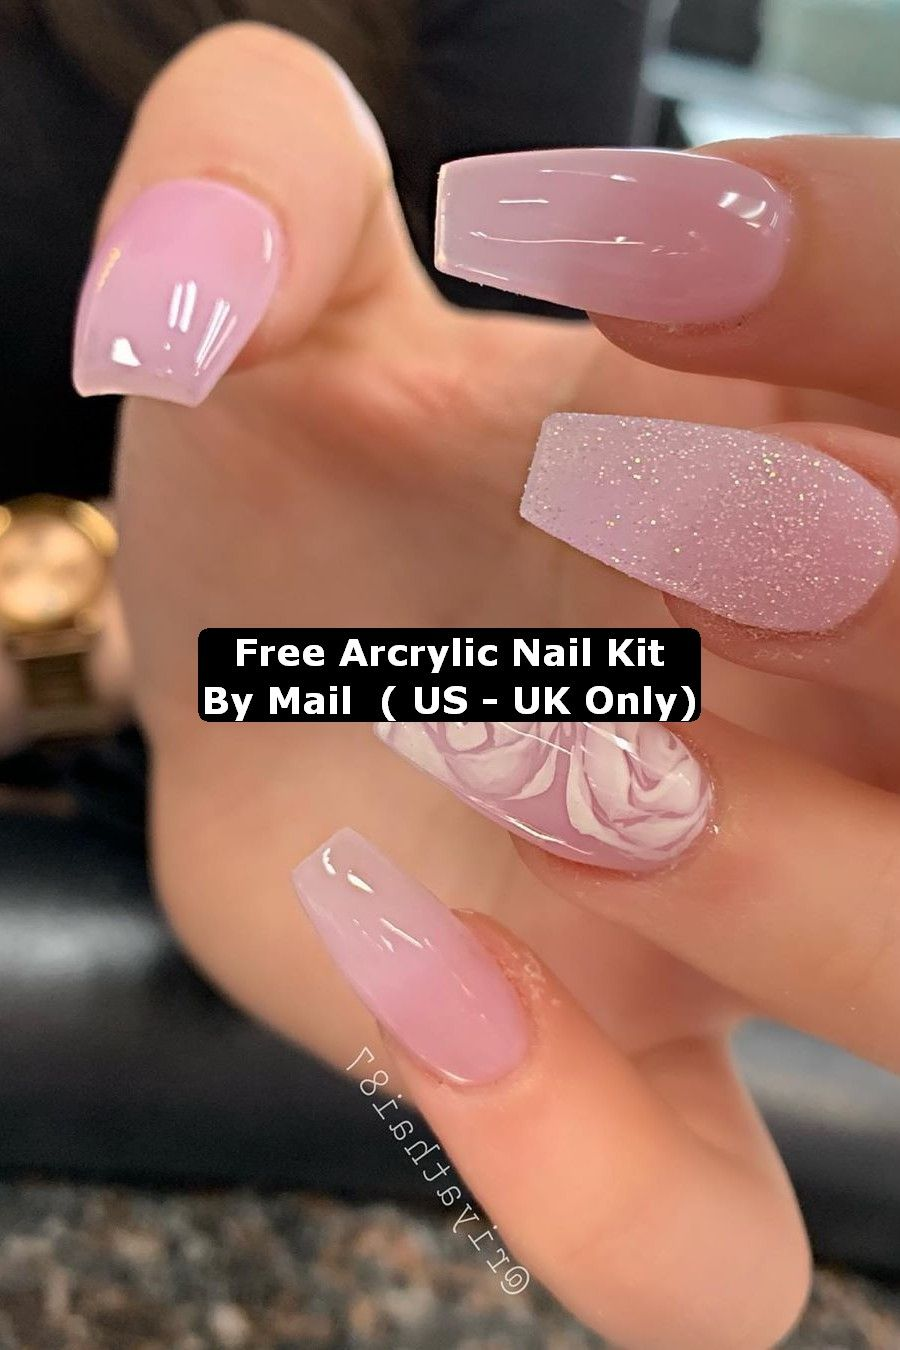 7 How To Get Acrylic Nail Kit In 2020 Almond Acrylic Nails Acrylic Nail Kit Nail Kit